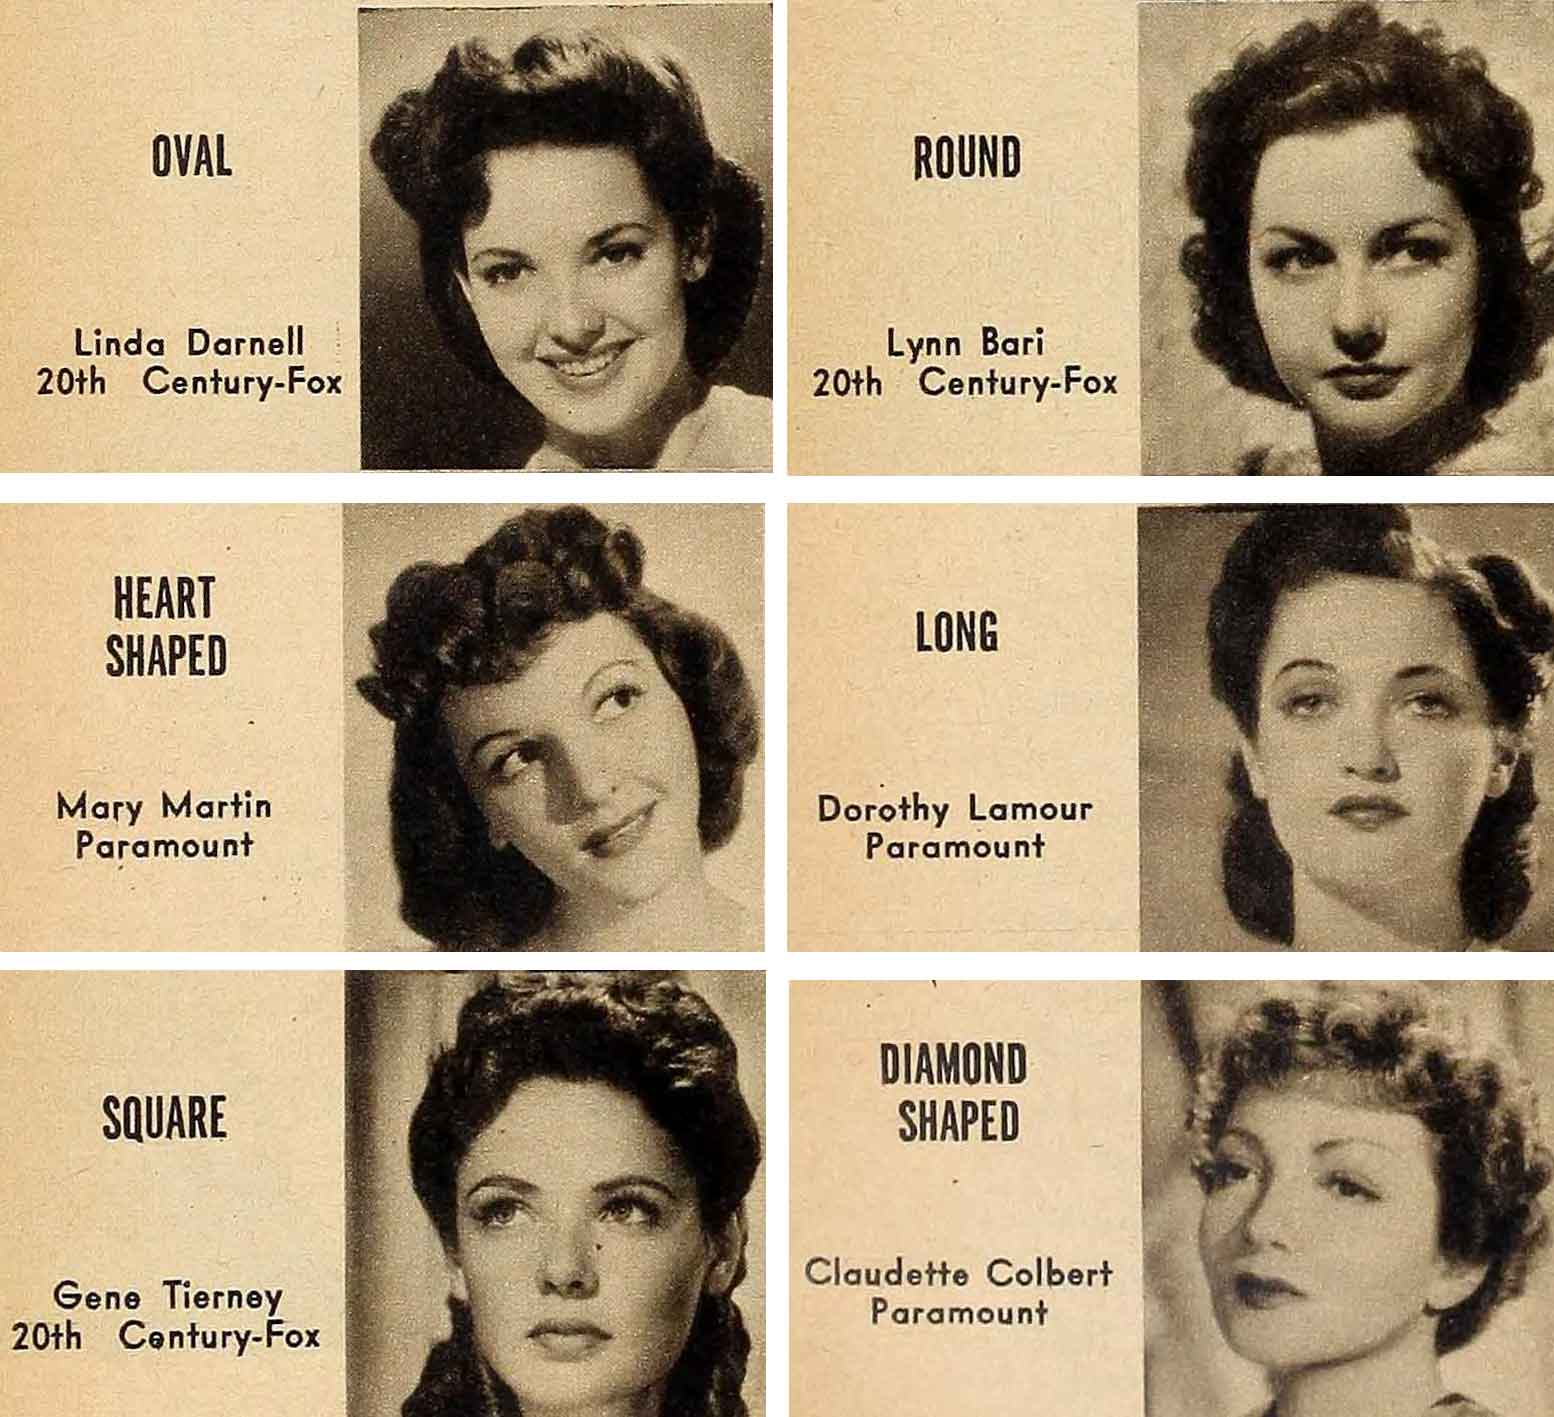 1940s Hair And Make Up Secrets For Your Face Type